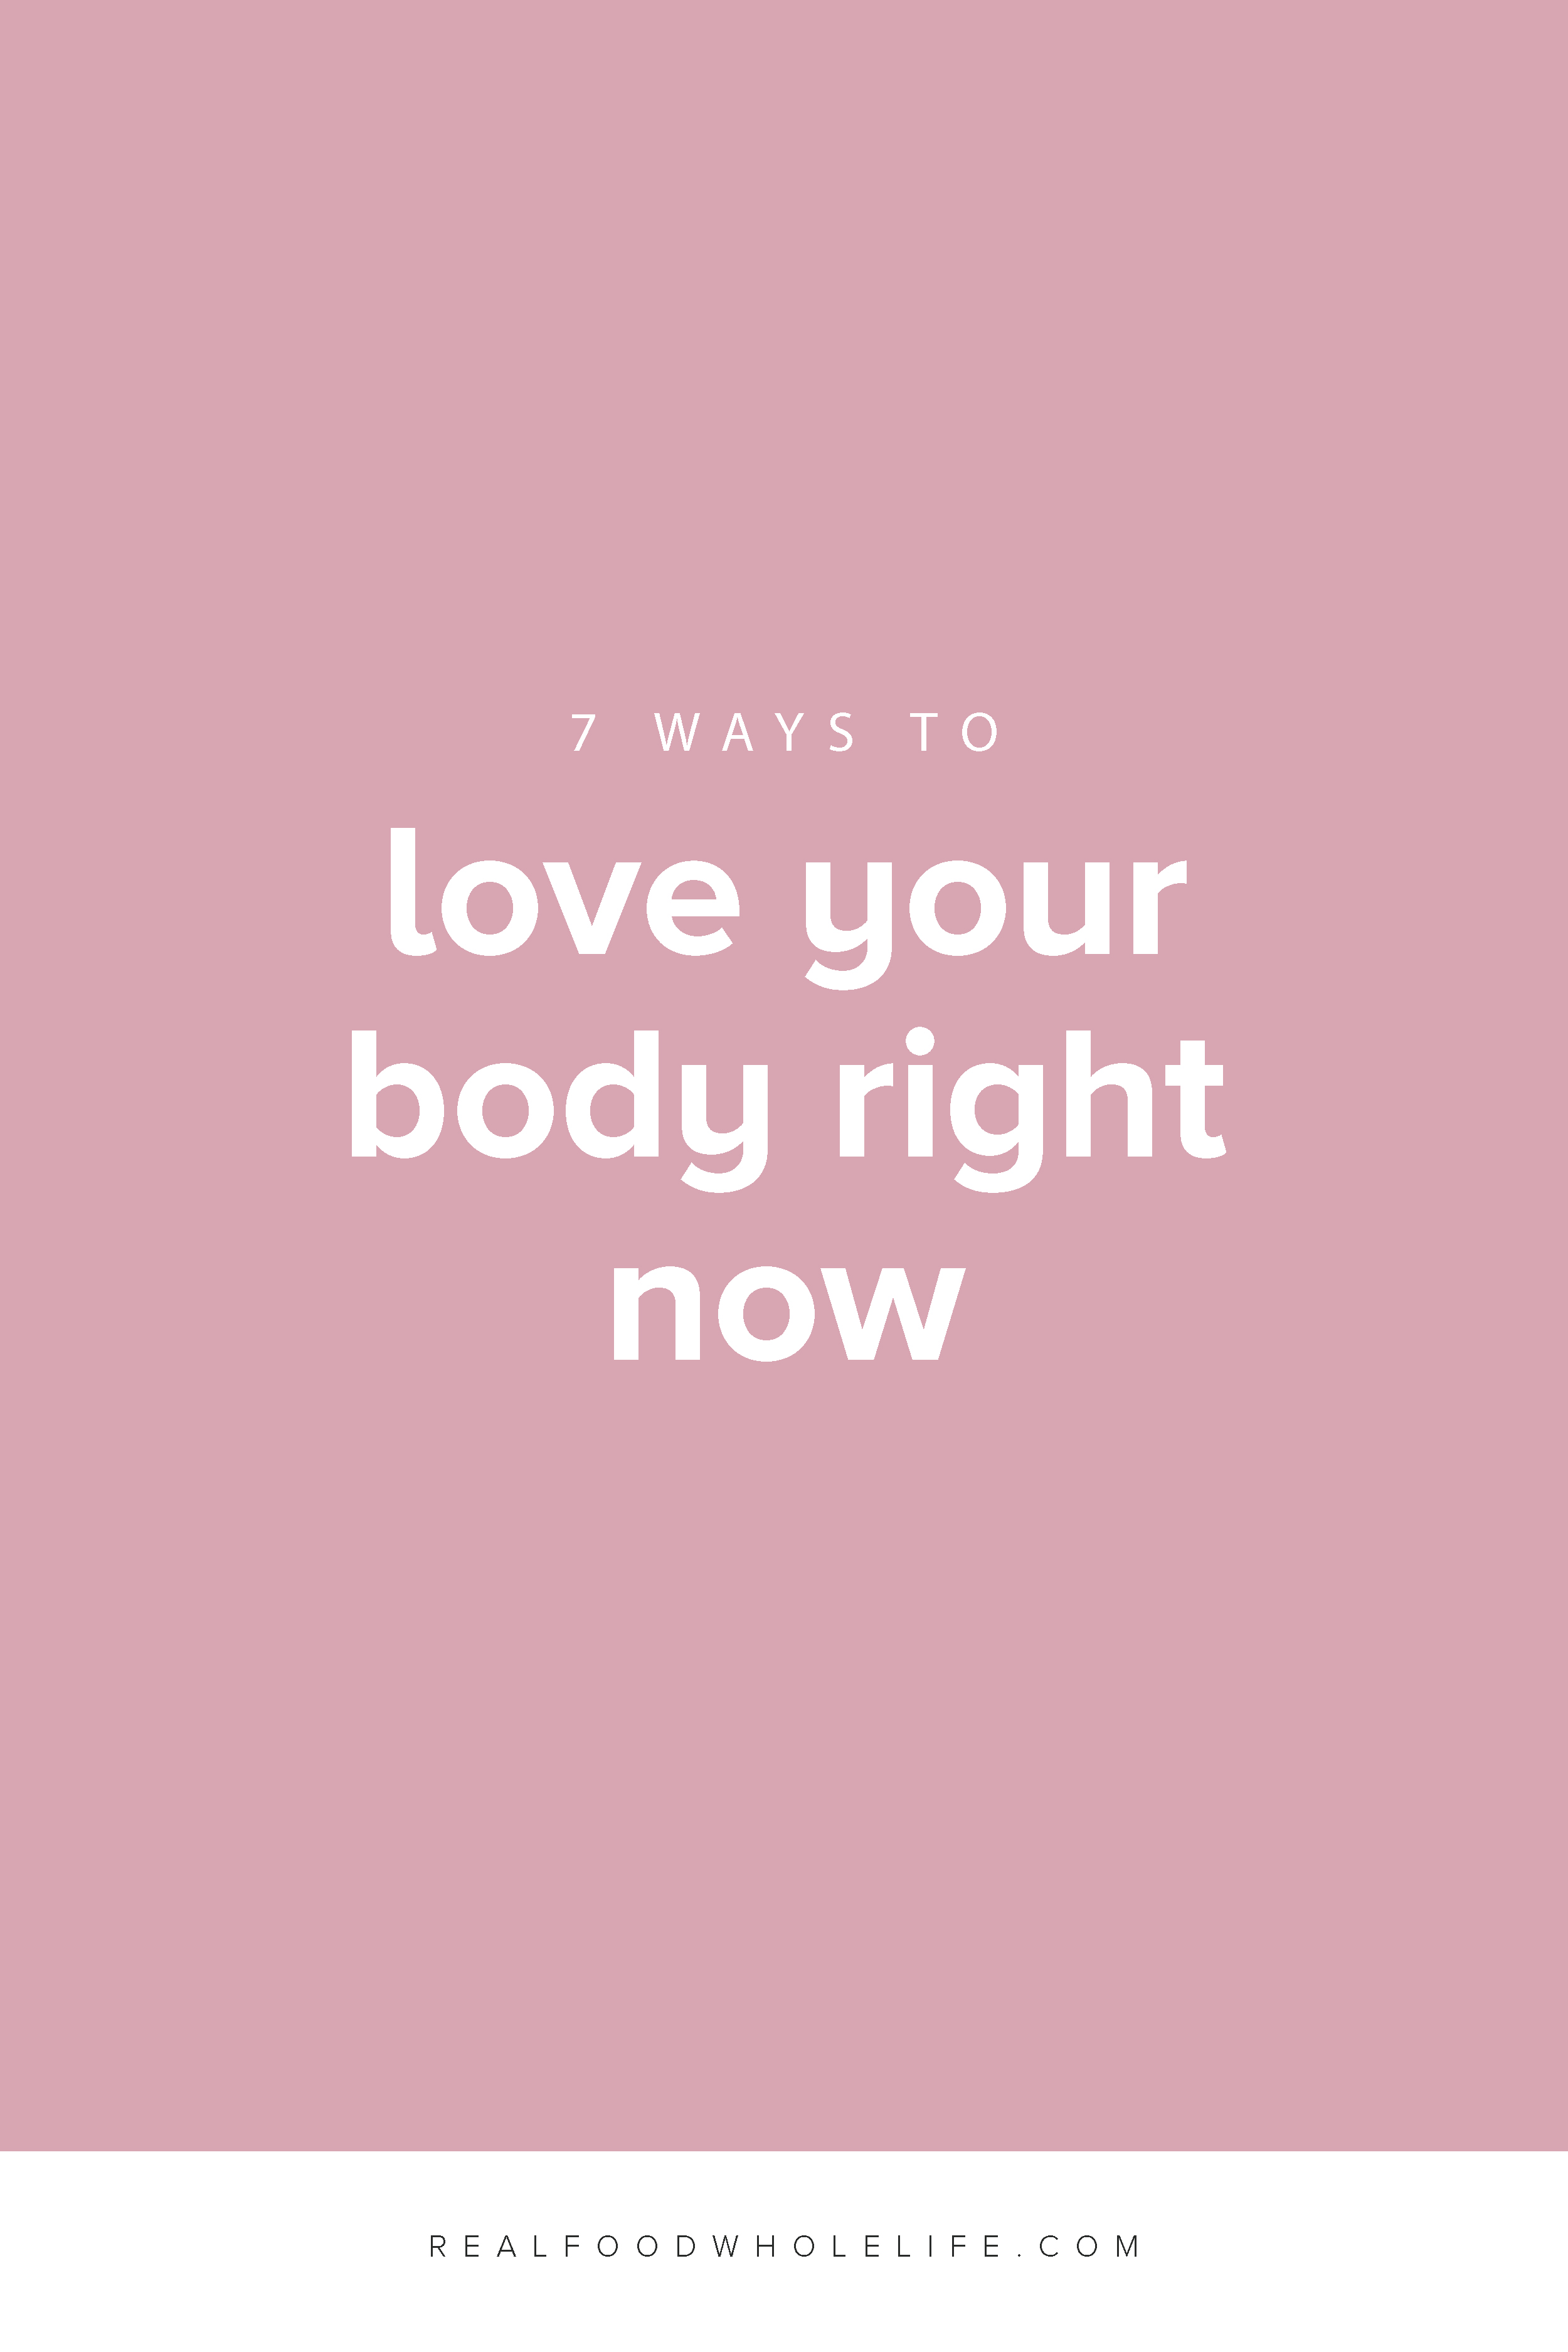 Body image can be a tricky thing, and while most of us understand the power of self-love, sometimes it can be difficult to actually put it into practice in real life. Read on for 7 ways to love your body right now. #selflove #bodylove #realfoodwholelife #feelgoodeffect #wellness